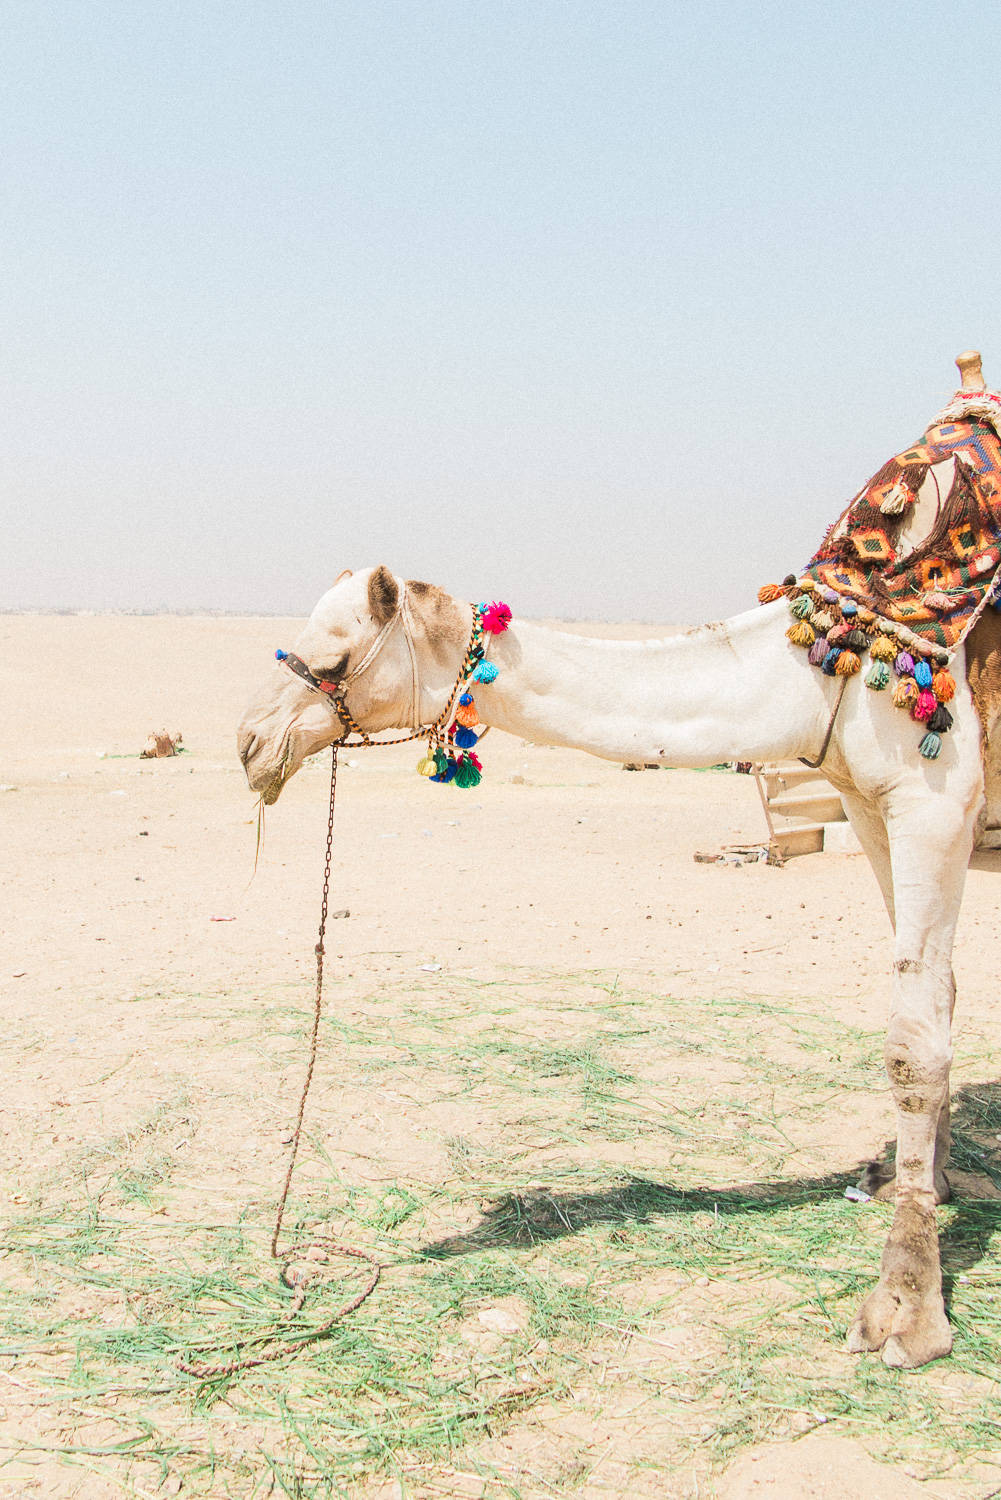 A camel eating grass in the Giza Desert in Egypt